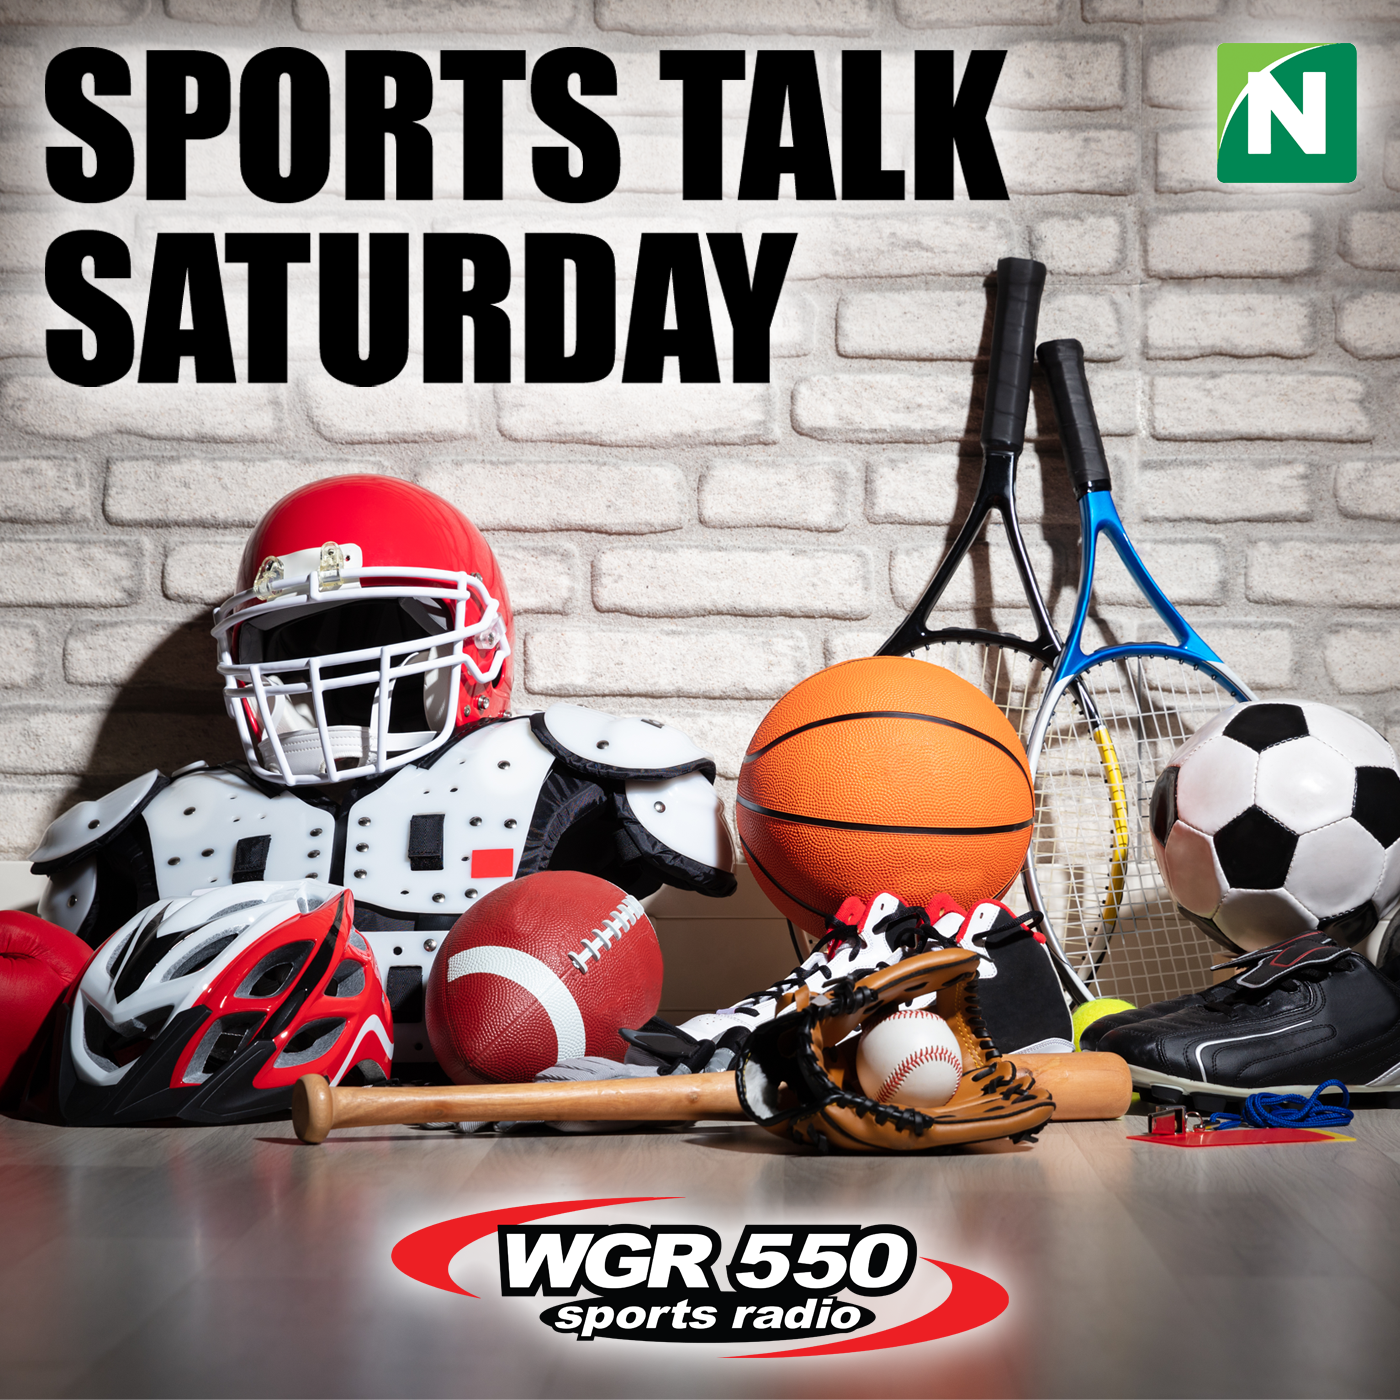 Sports Talk Saturday with Nate Geary